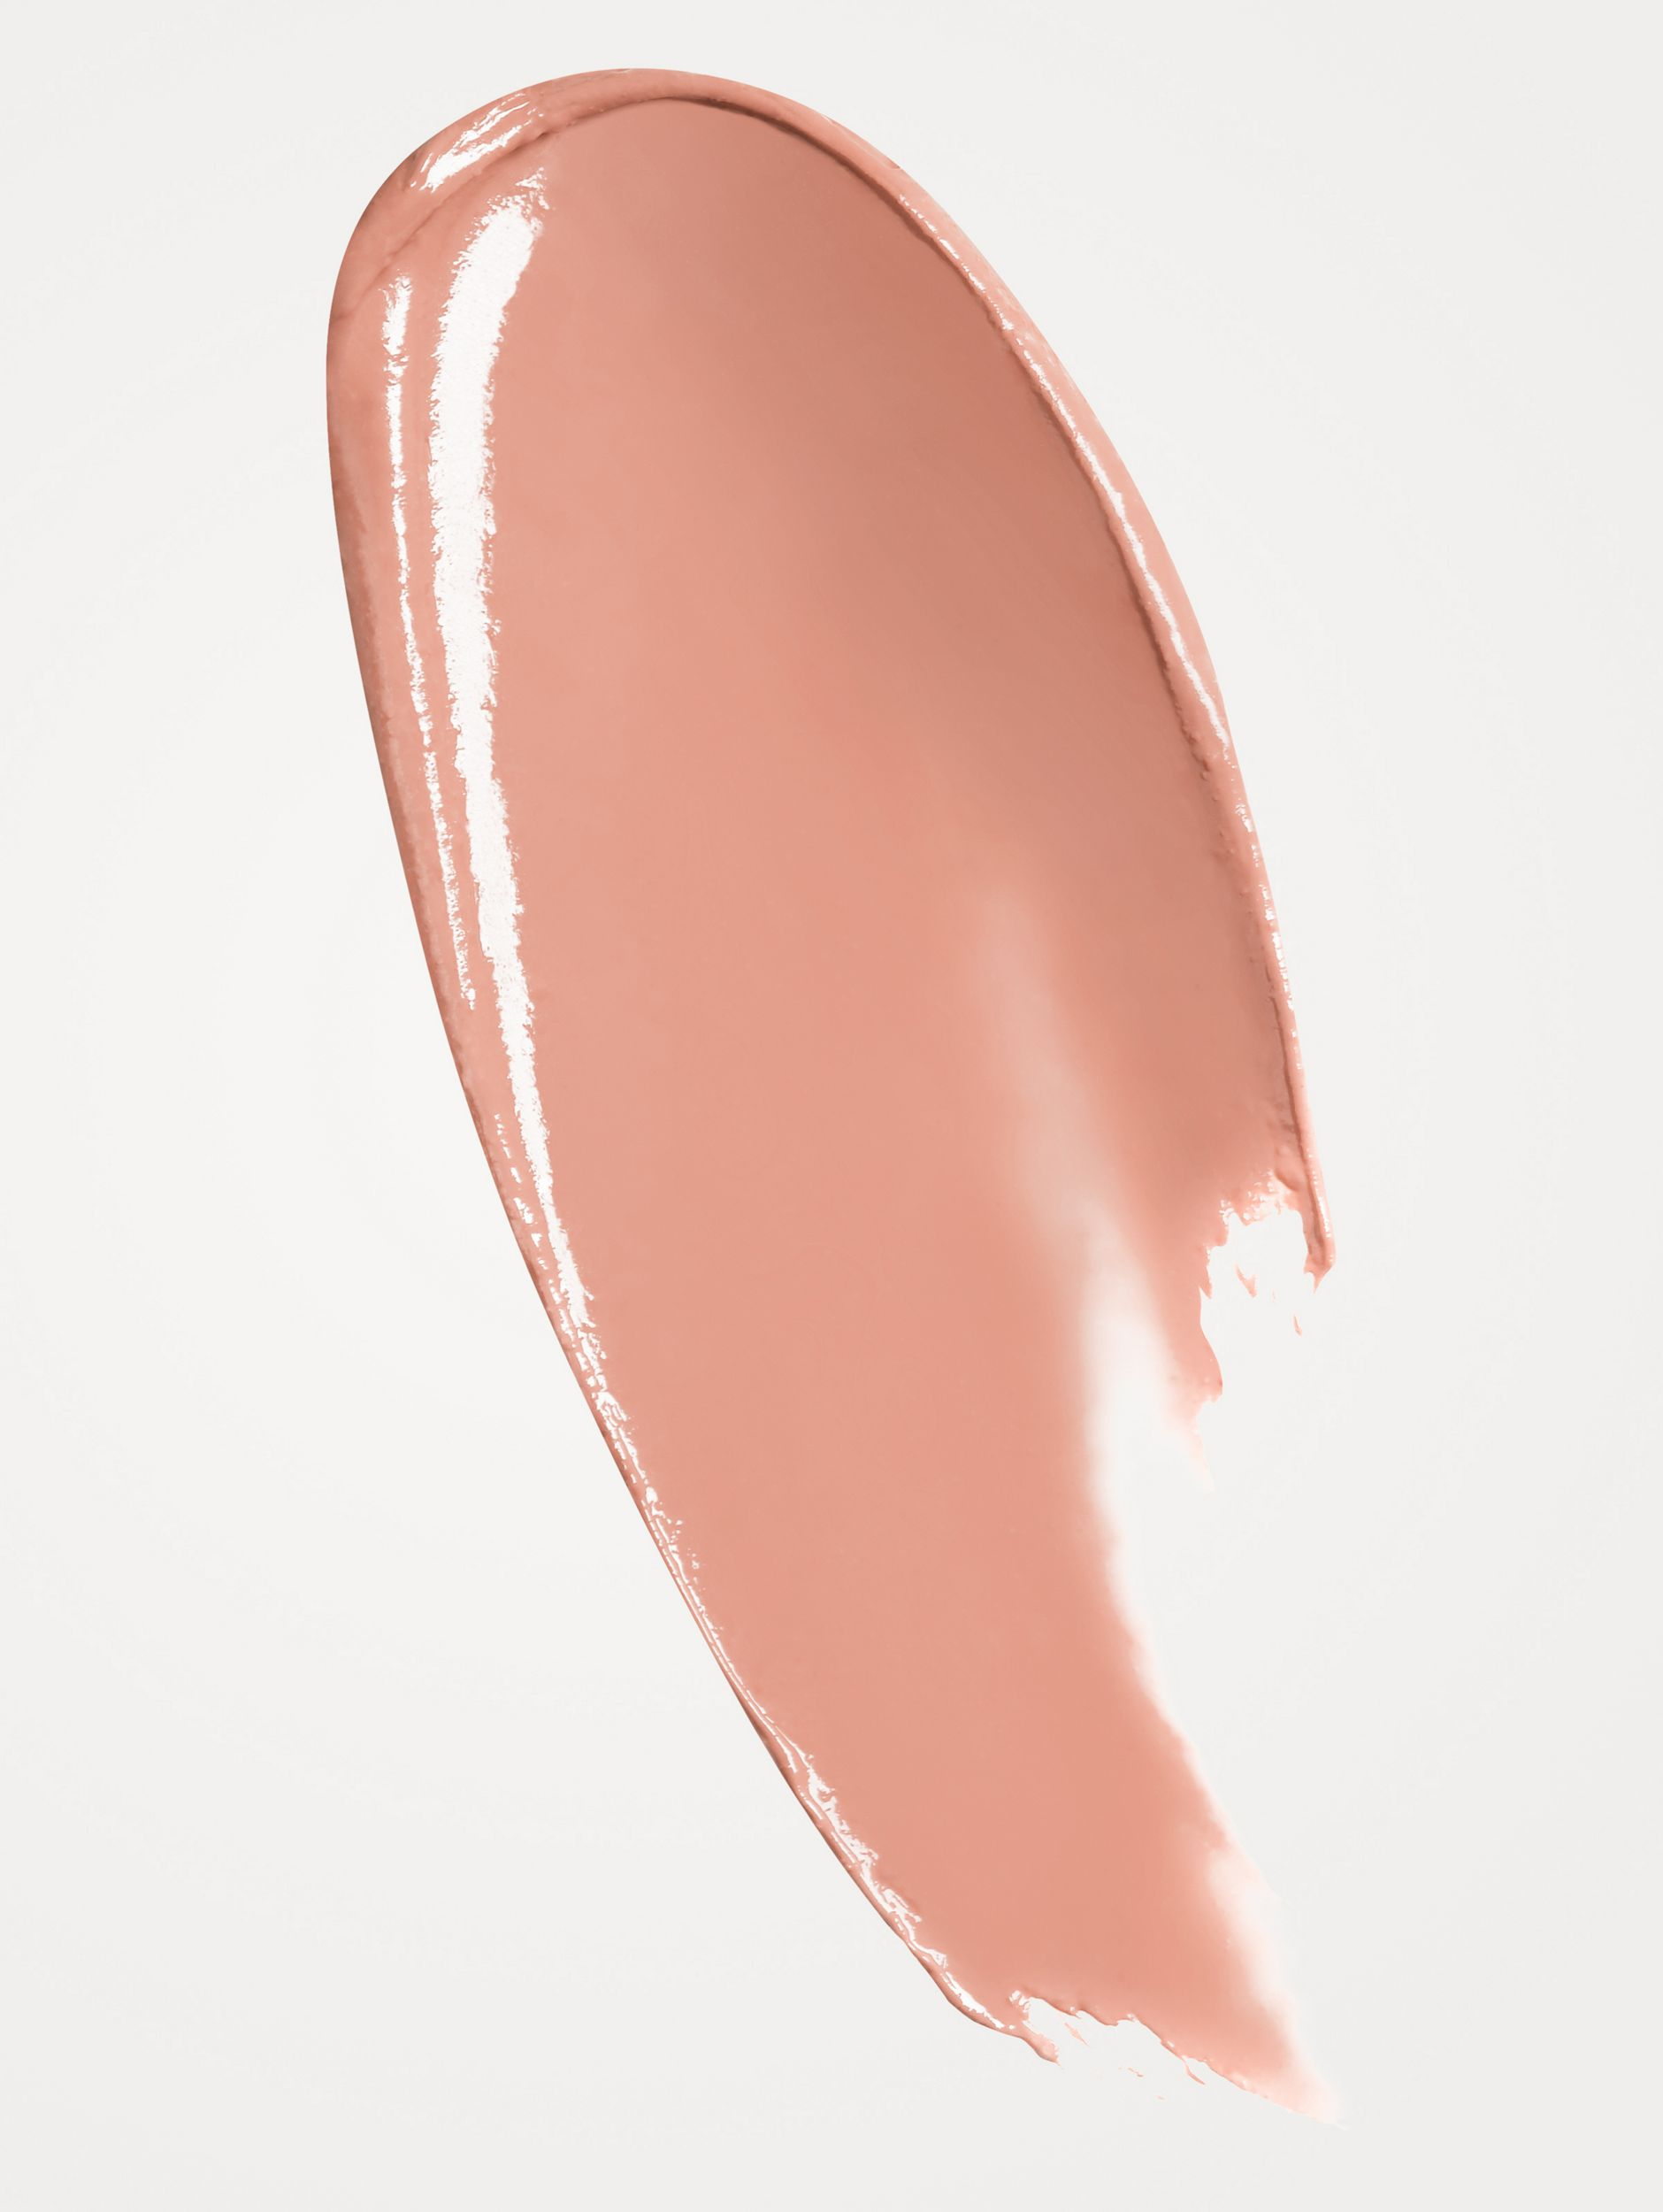 Burberry Full Kisses – Nude Blush No.501 - Women | Burberry - 2